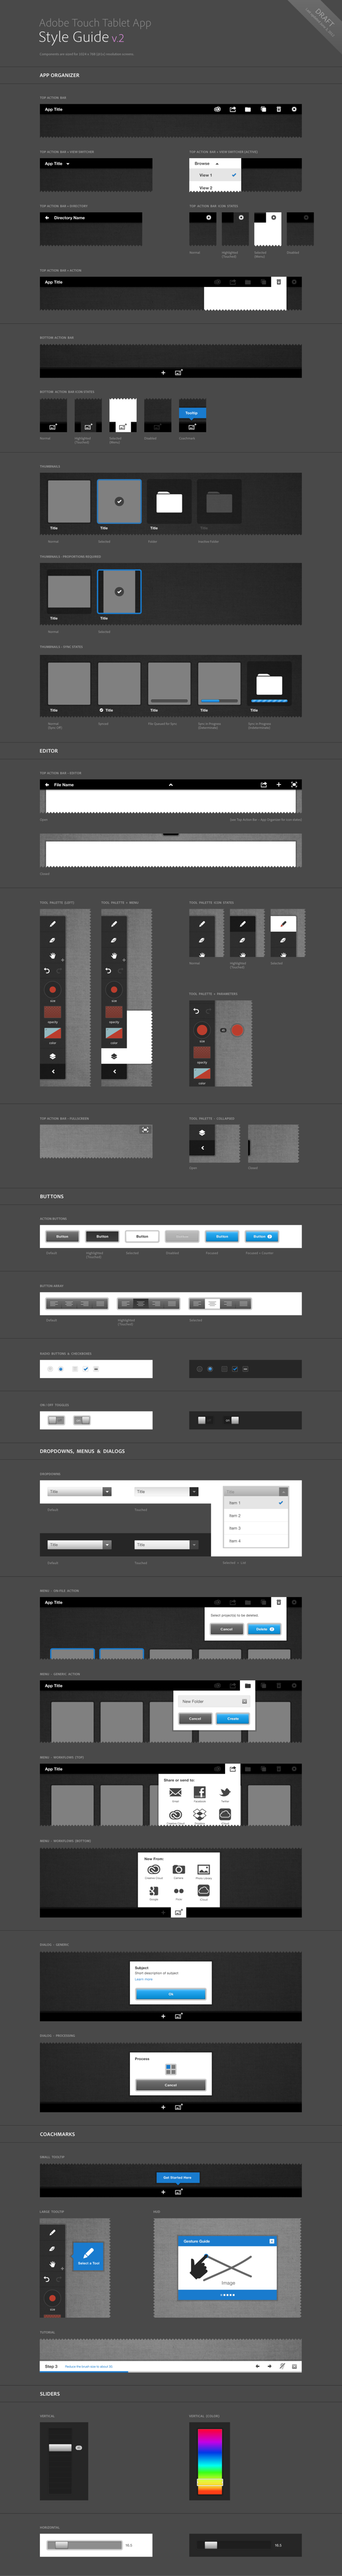 "Adobe Touch Tablet Style Guide *** ""Component sheet exploring v2 of Adobe's Touch Tablet UI language"" by Gabriel Campbell, via Behance *** #gui #adobe #tablet"